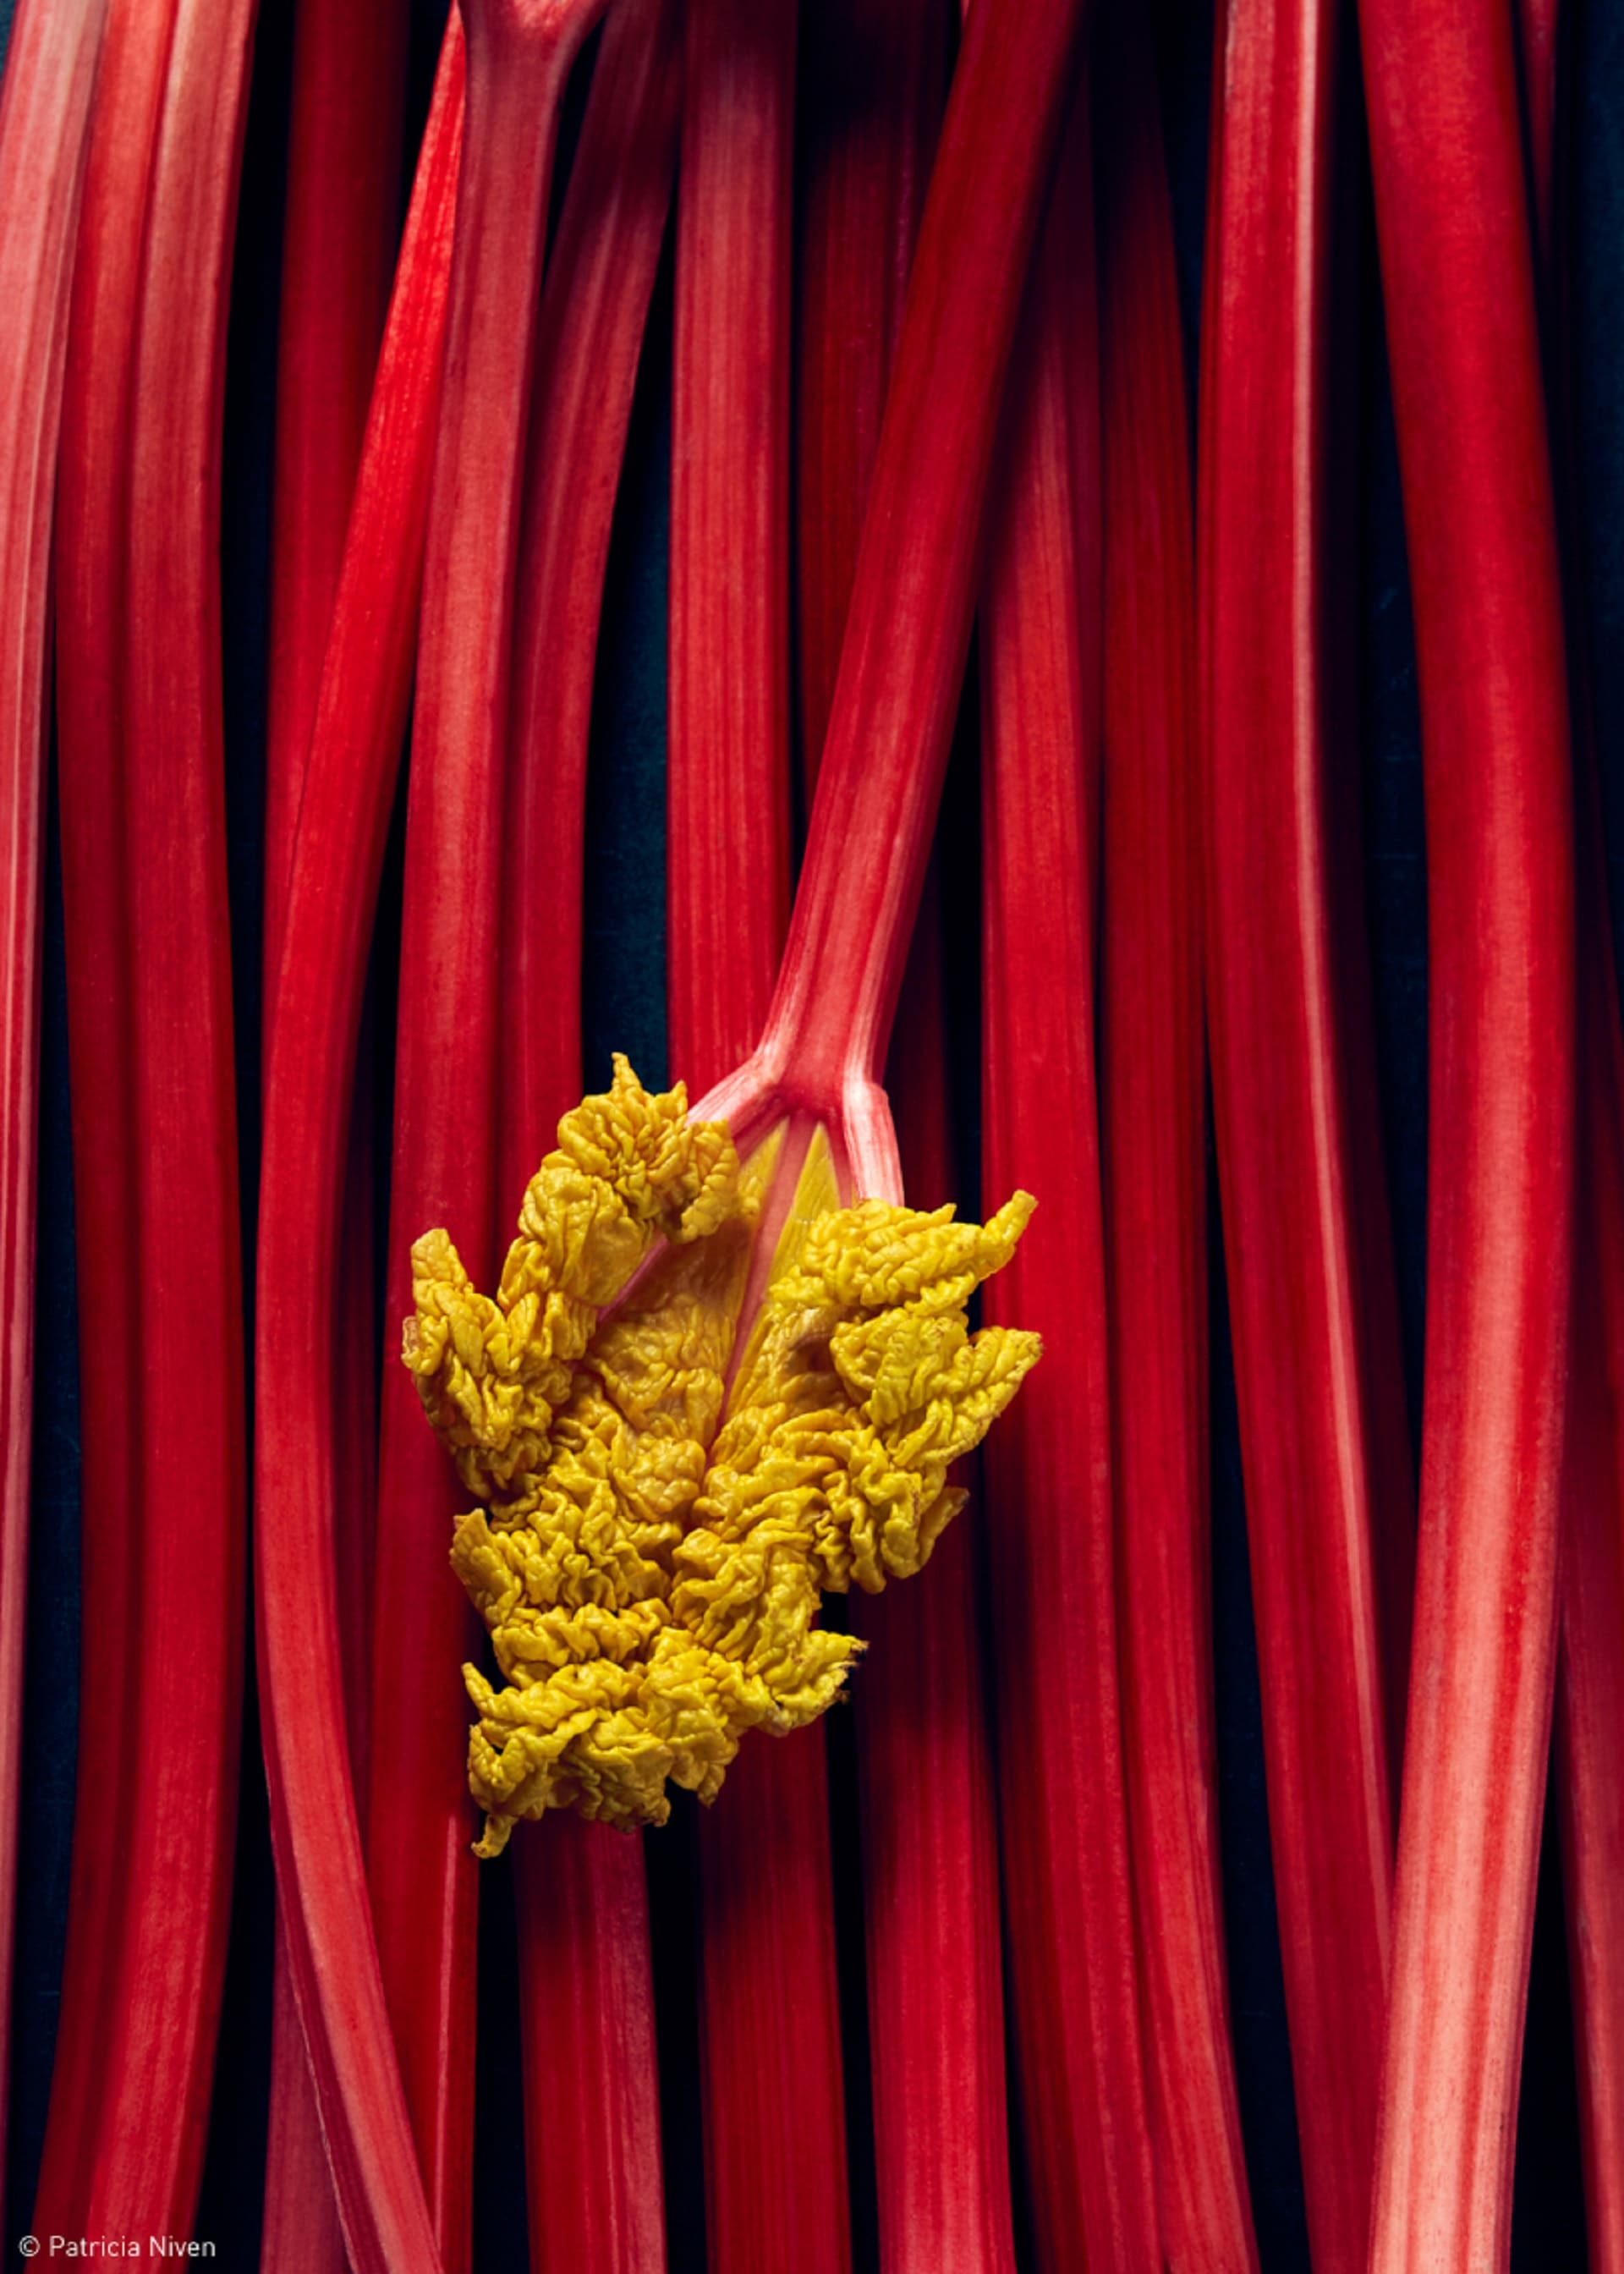 Production Paradise Previously Published - Rhubarb by Patricia Niven